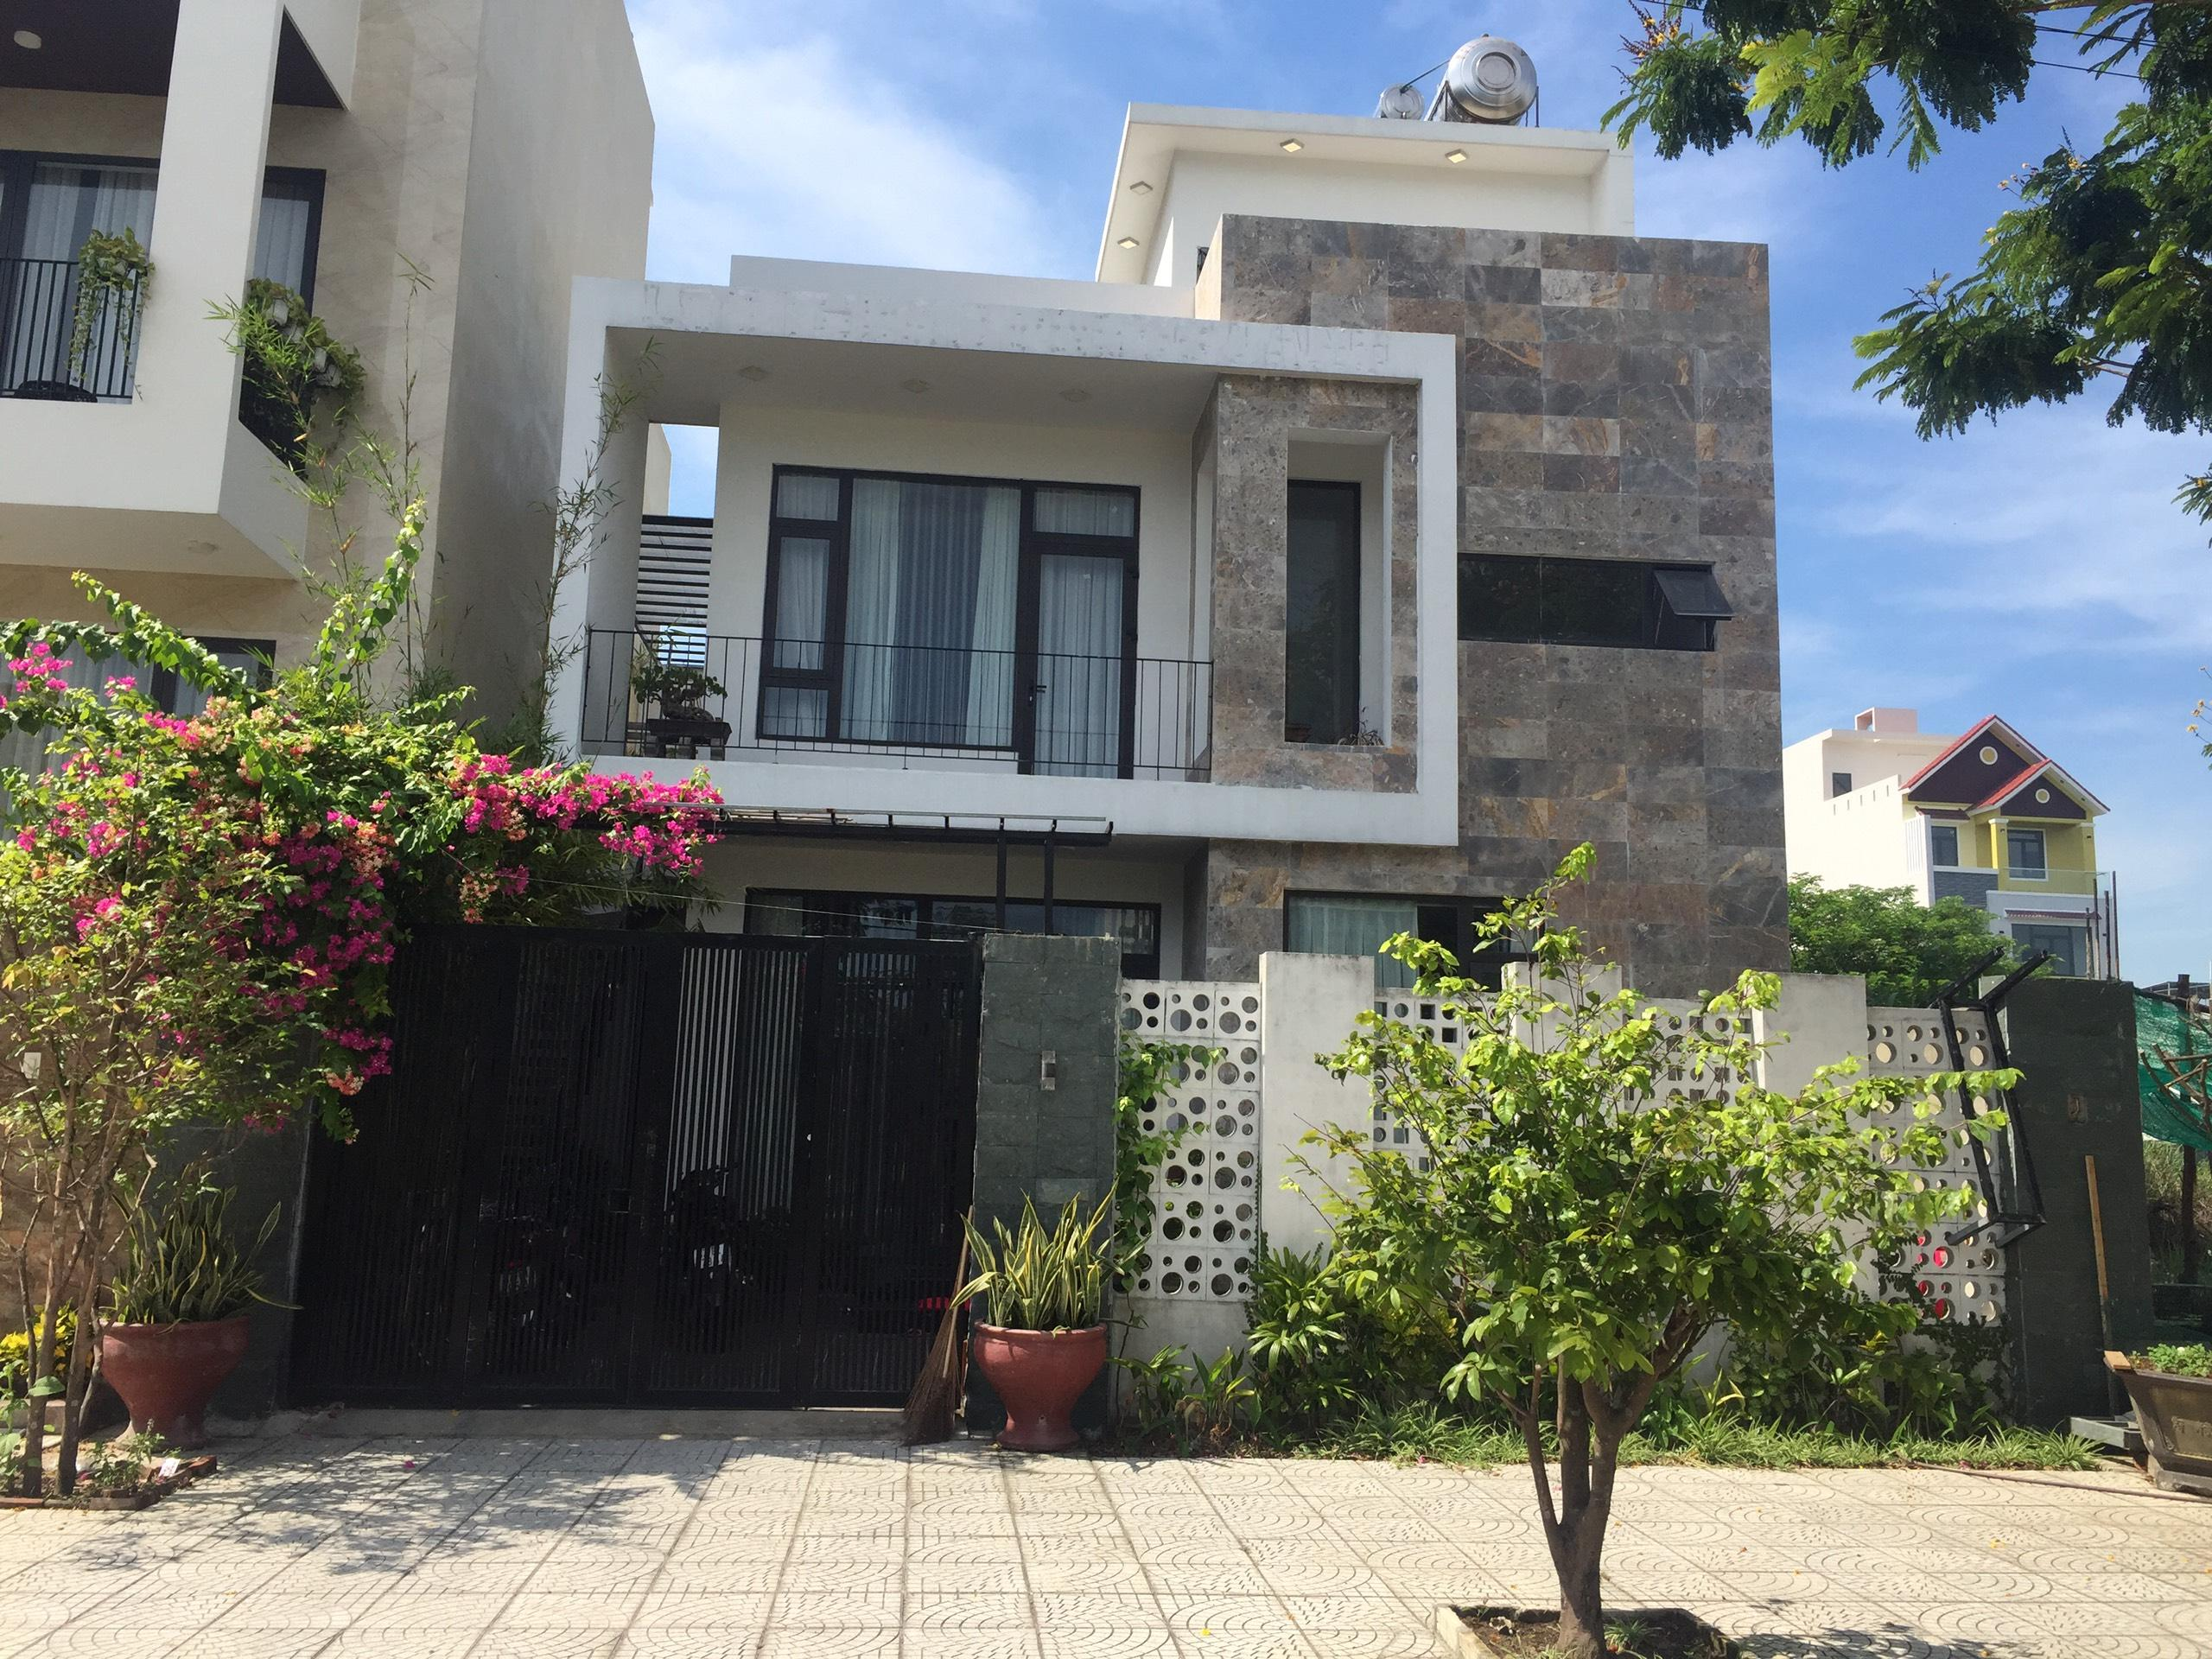 4-bedrooms house for rent in Son Tra Da Nang